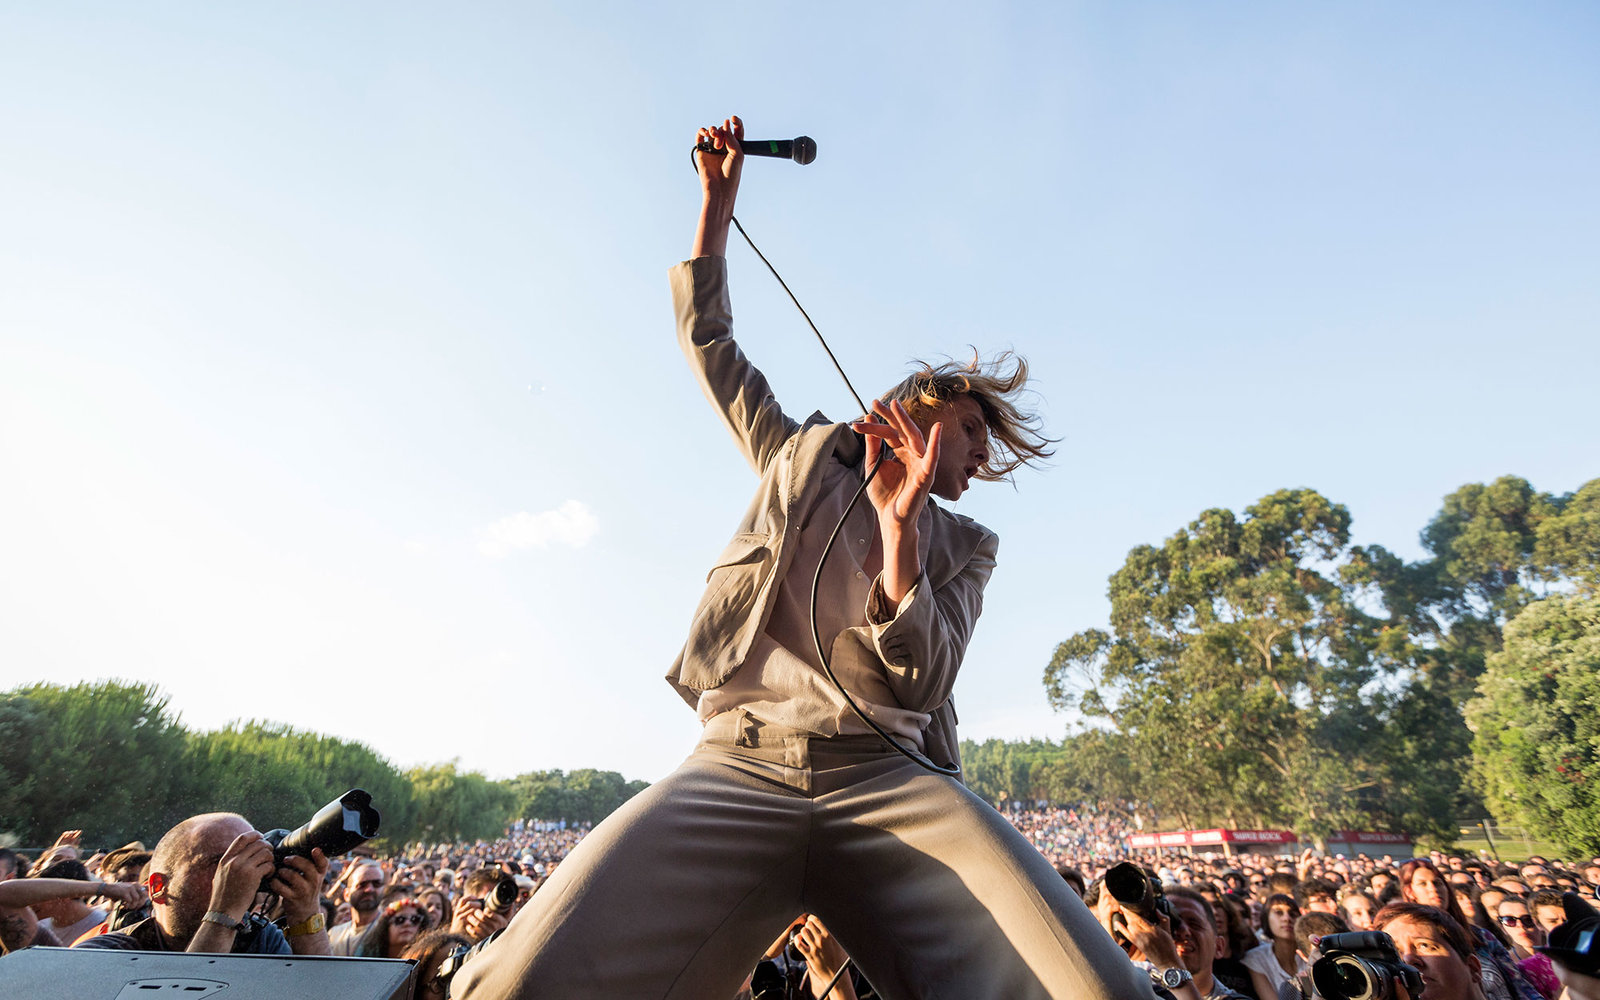 PORTO, MATOSINHOS, PORTUGAL - 2015/06/06: Foxygen performs live in front of an audience of hundreds of people on the third day of NOS Primavera Sound 2015 held in Porto. (Photo by Diogo Baptista/Pacific Press/LightRocket via Getty Images)